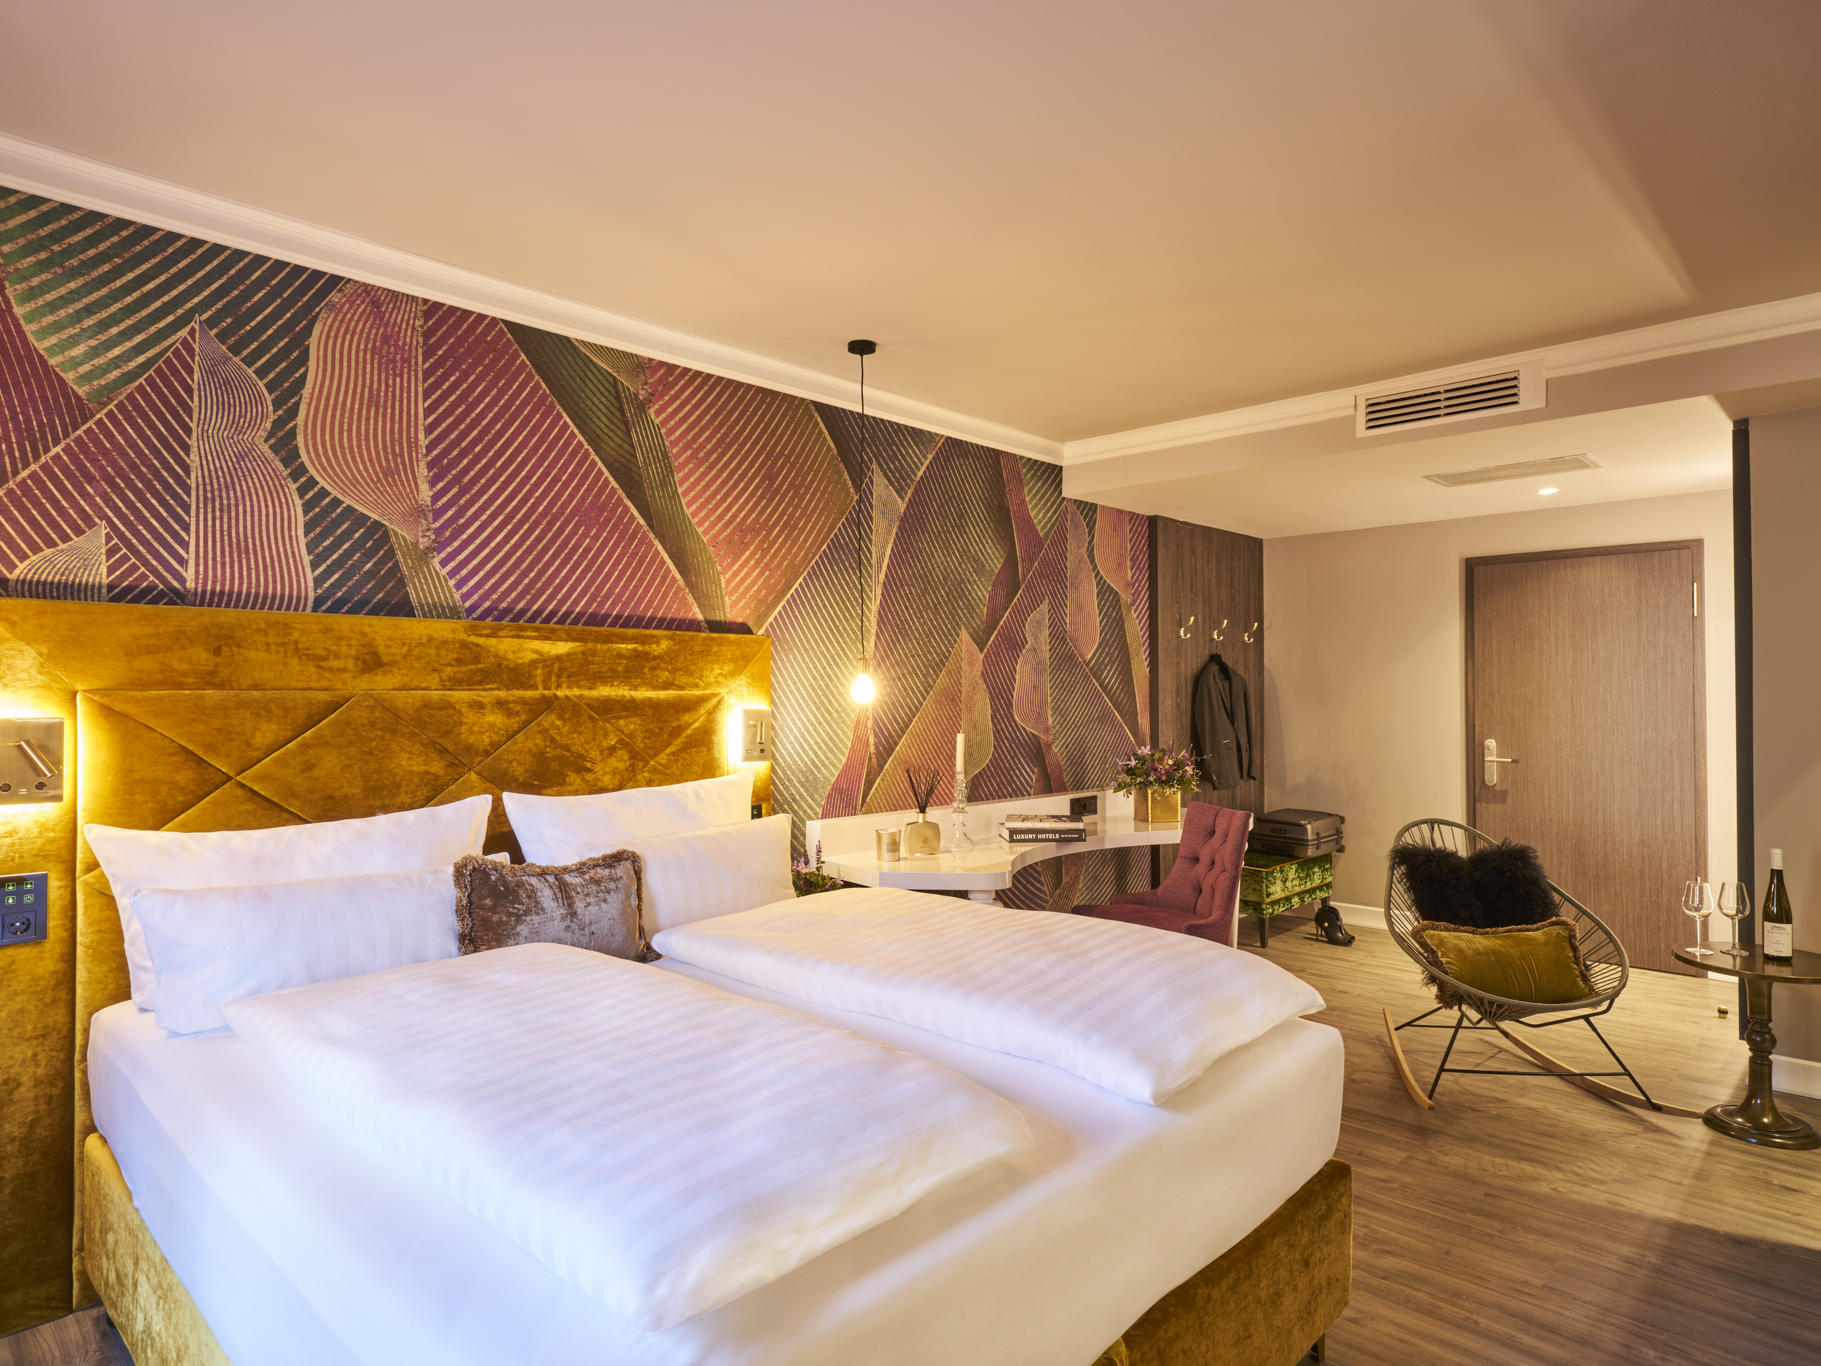 Grand Deluxe Double Room at Classic Hotel Harmonie in Cologne